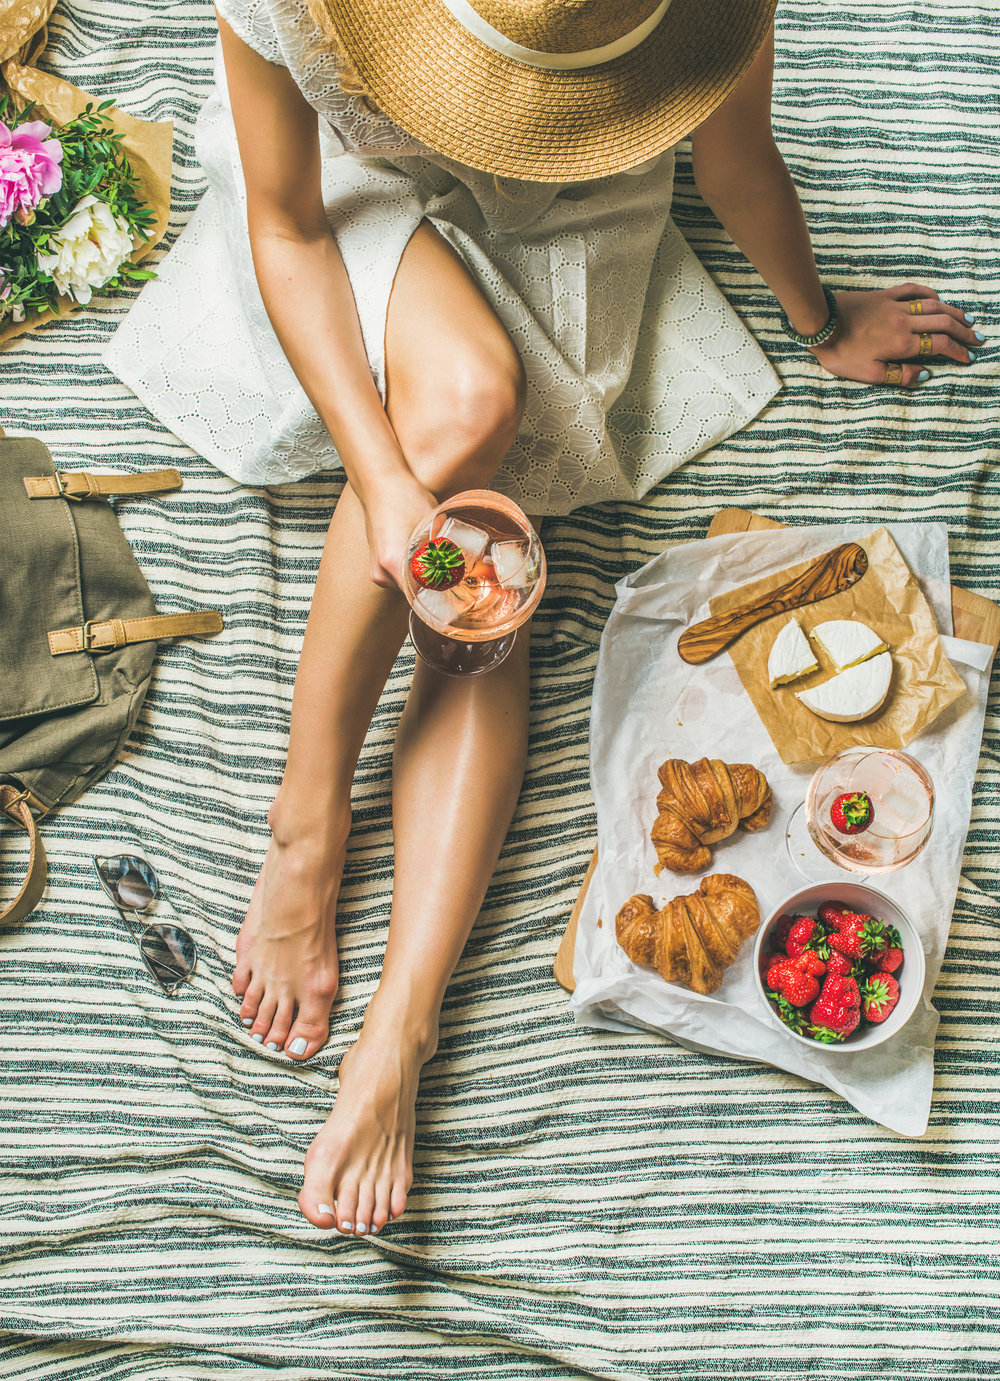 84497777-french-style-romantic-picnic-setting-young-woman-in-dress-with-glass-of-rose-wine-fresh-strawberries.jpg